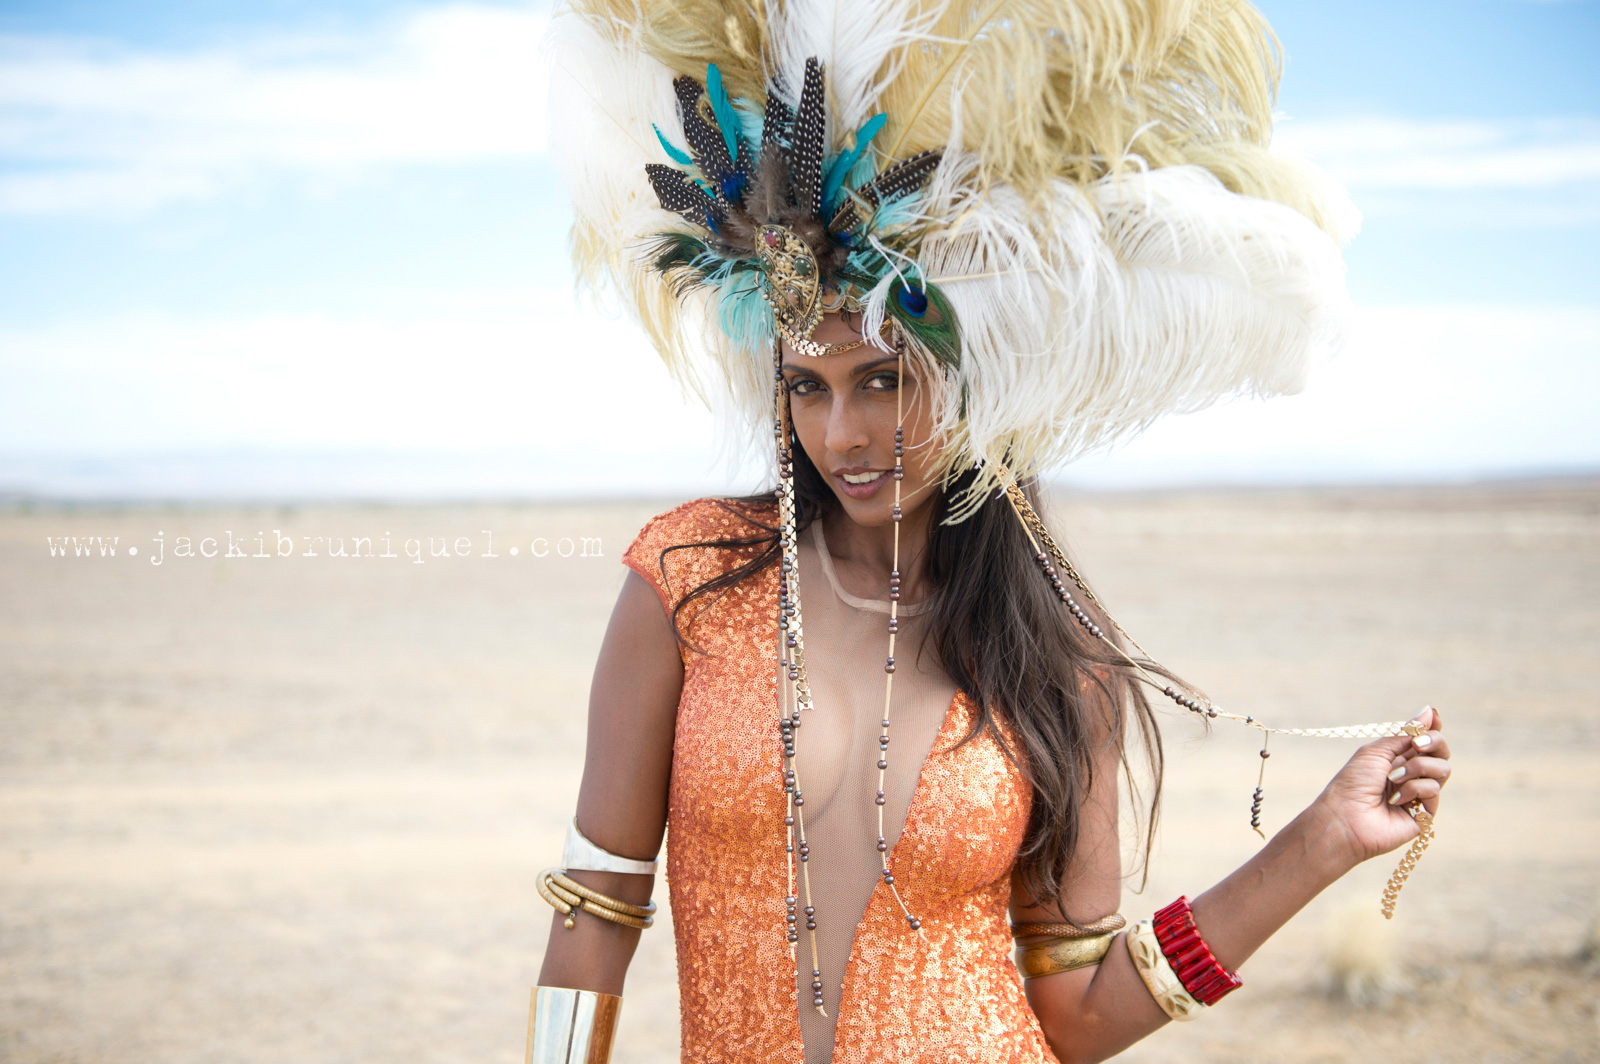 AfrikaBurn Tankwa Feather Headdress